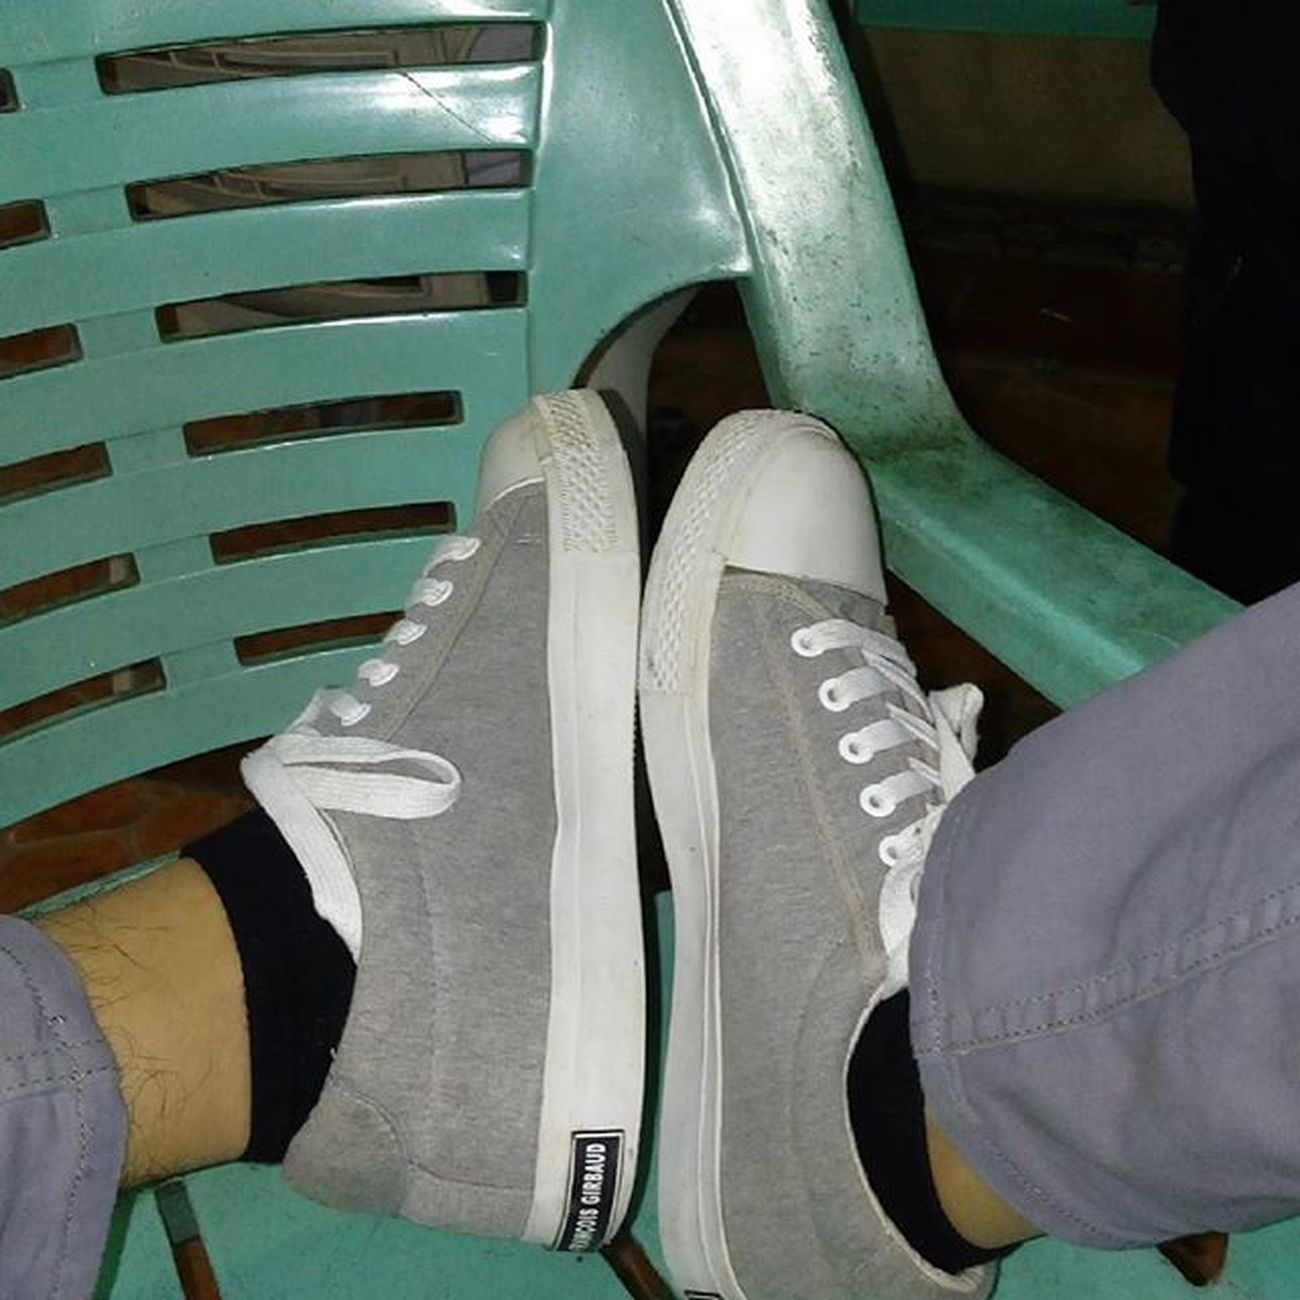 Late Upload. Marithe' Francois' Girbaud sneakers. 👟Girbaudph